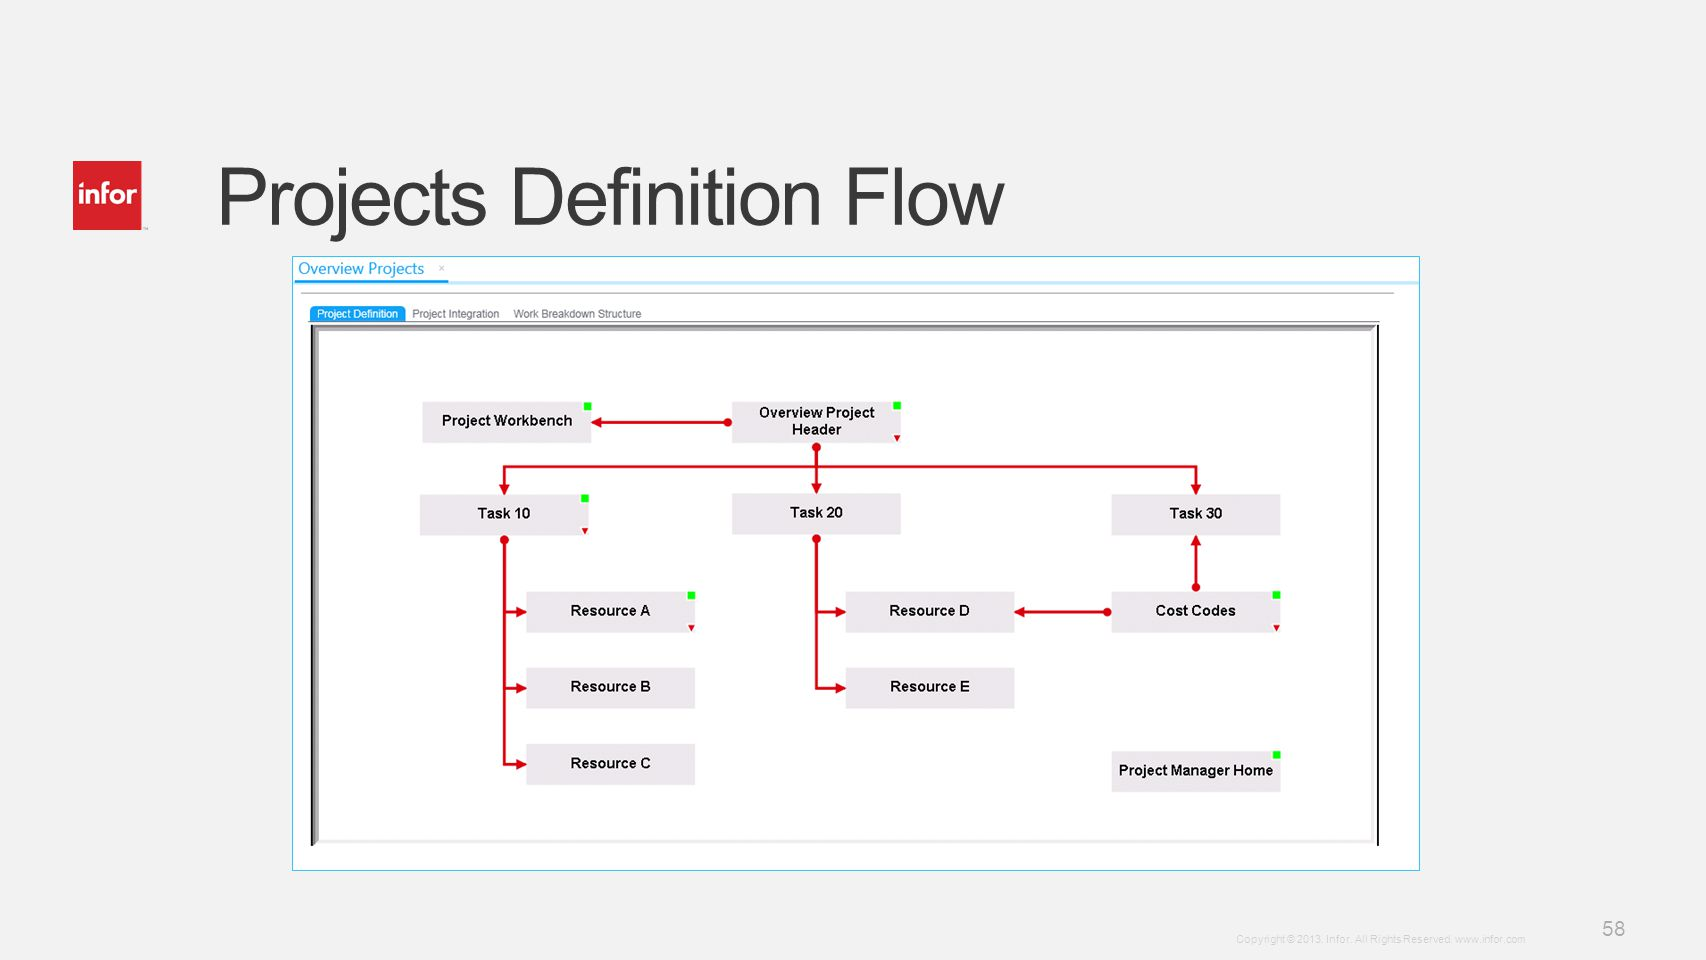 Projects Definition Flow